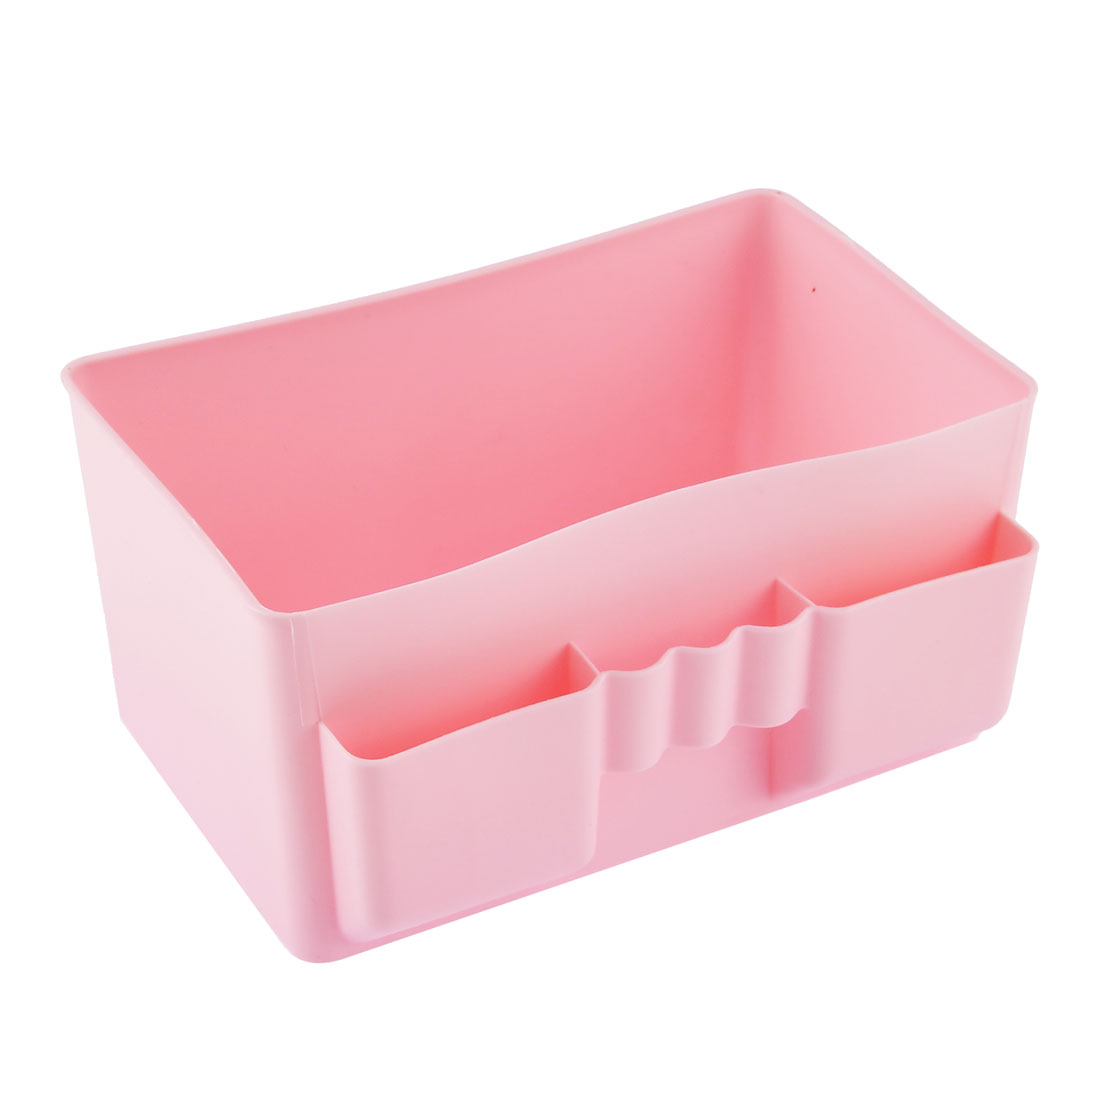 Office Table Desktop Plastic Storage Case Organizer Drawer Divider Box Pink